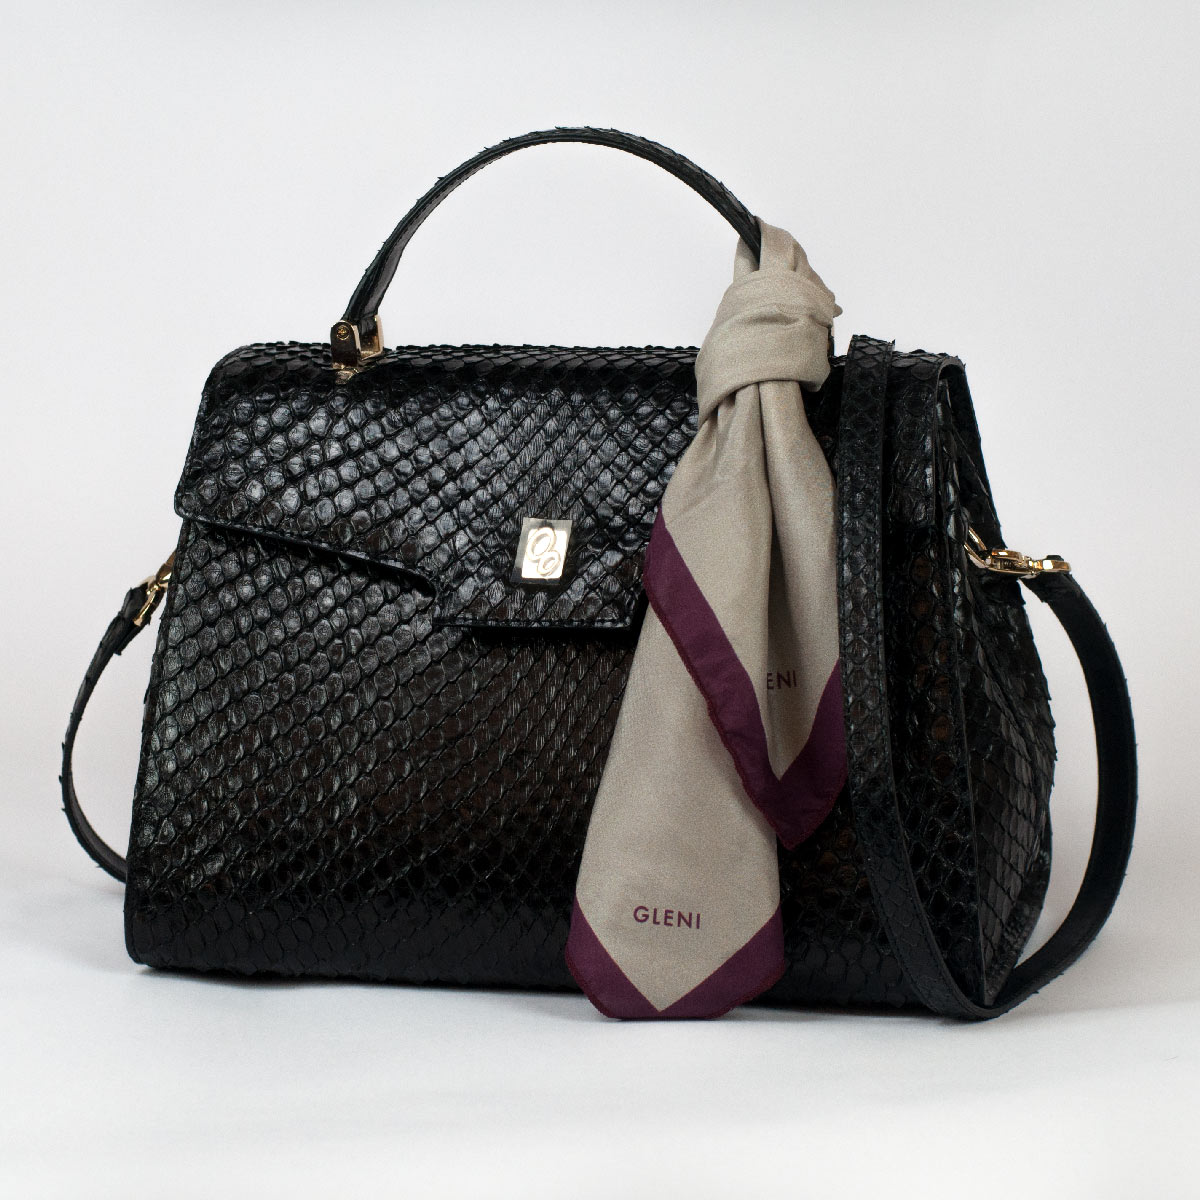 Anaconda handbag